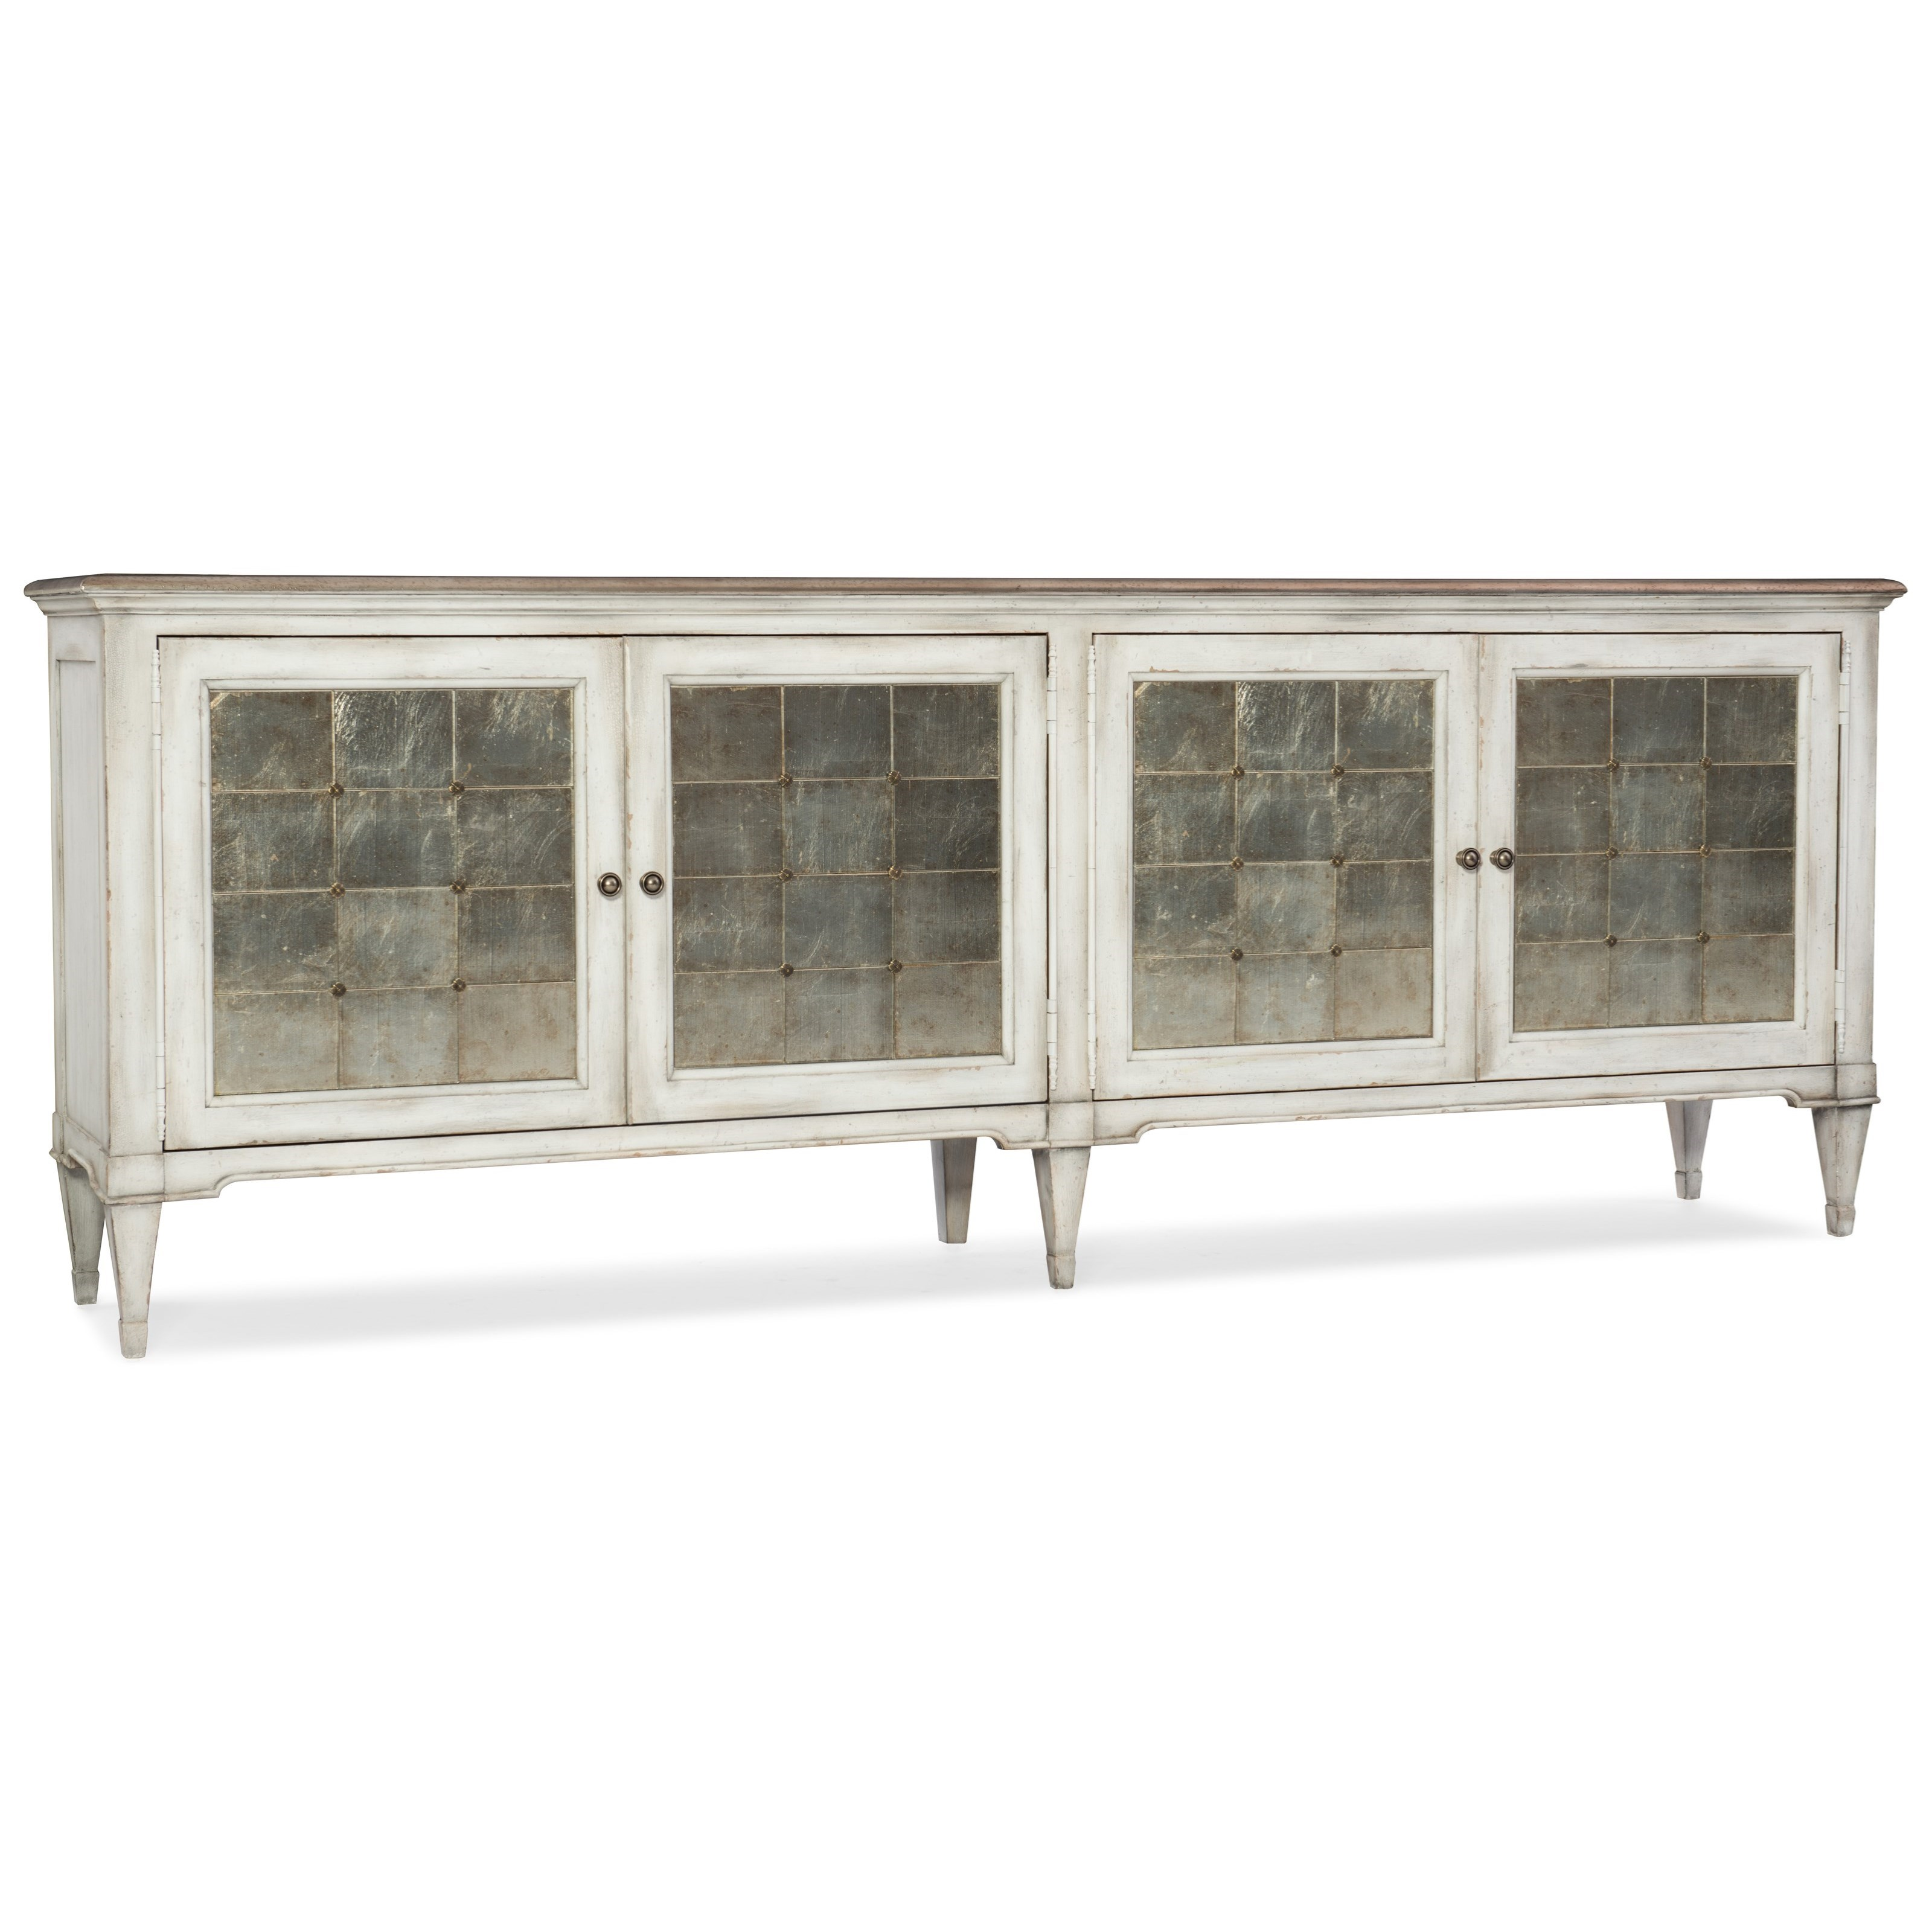 Arabella Four-Door Credenza by Hooker Furniture at Alison Craig Home Furnishings